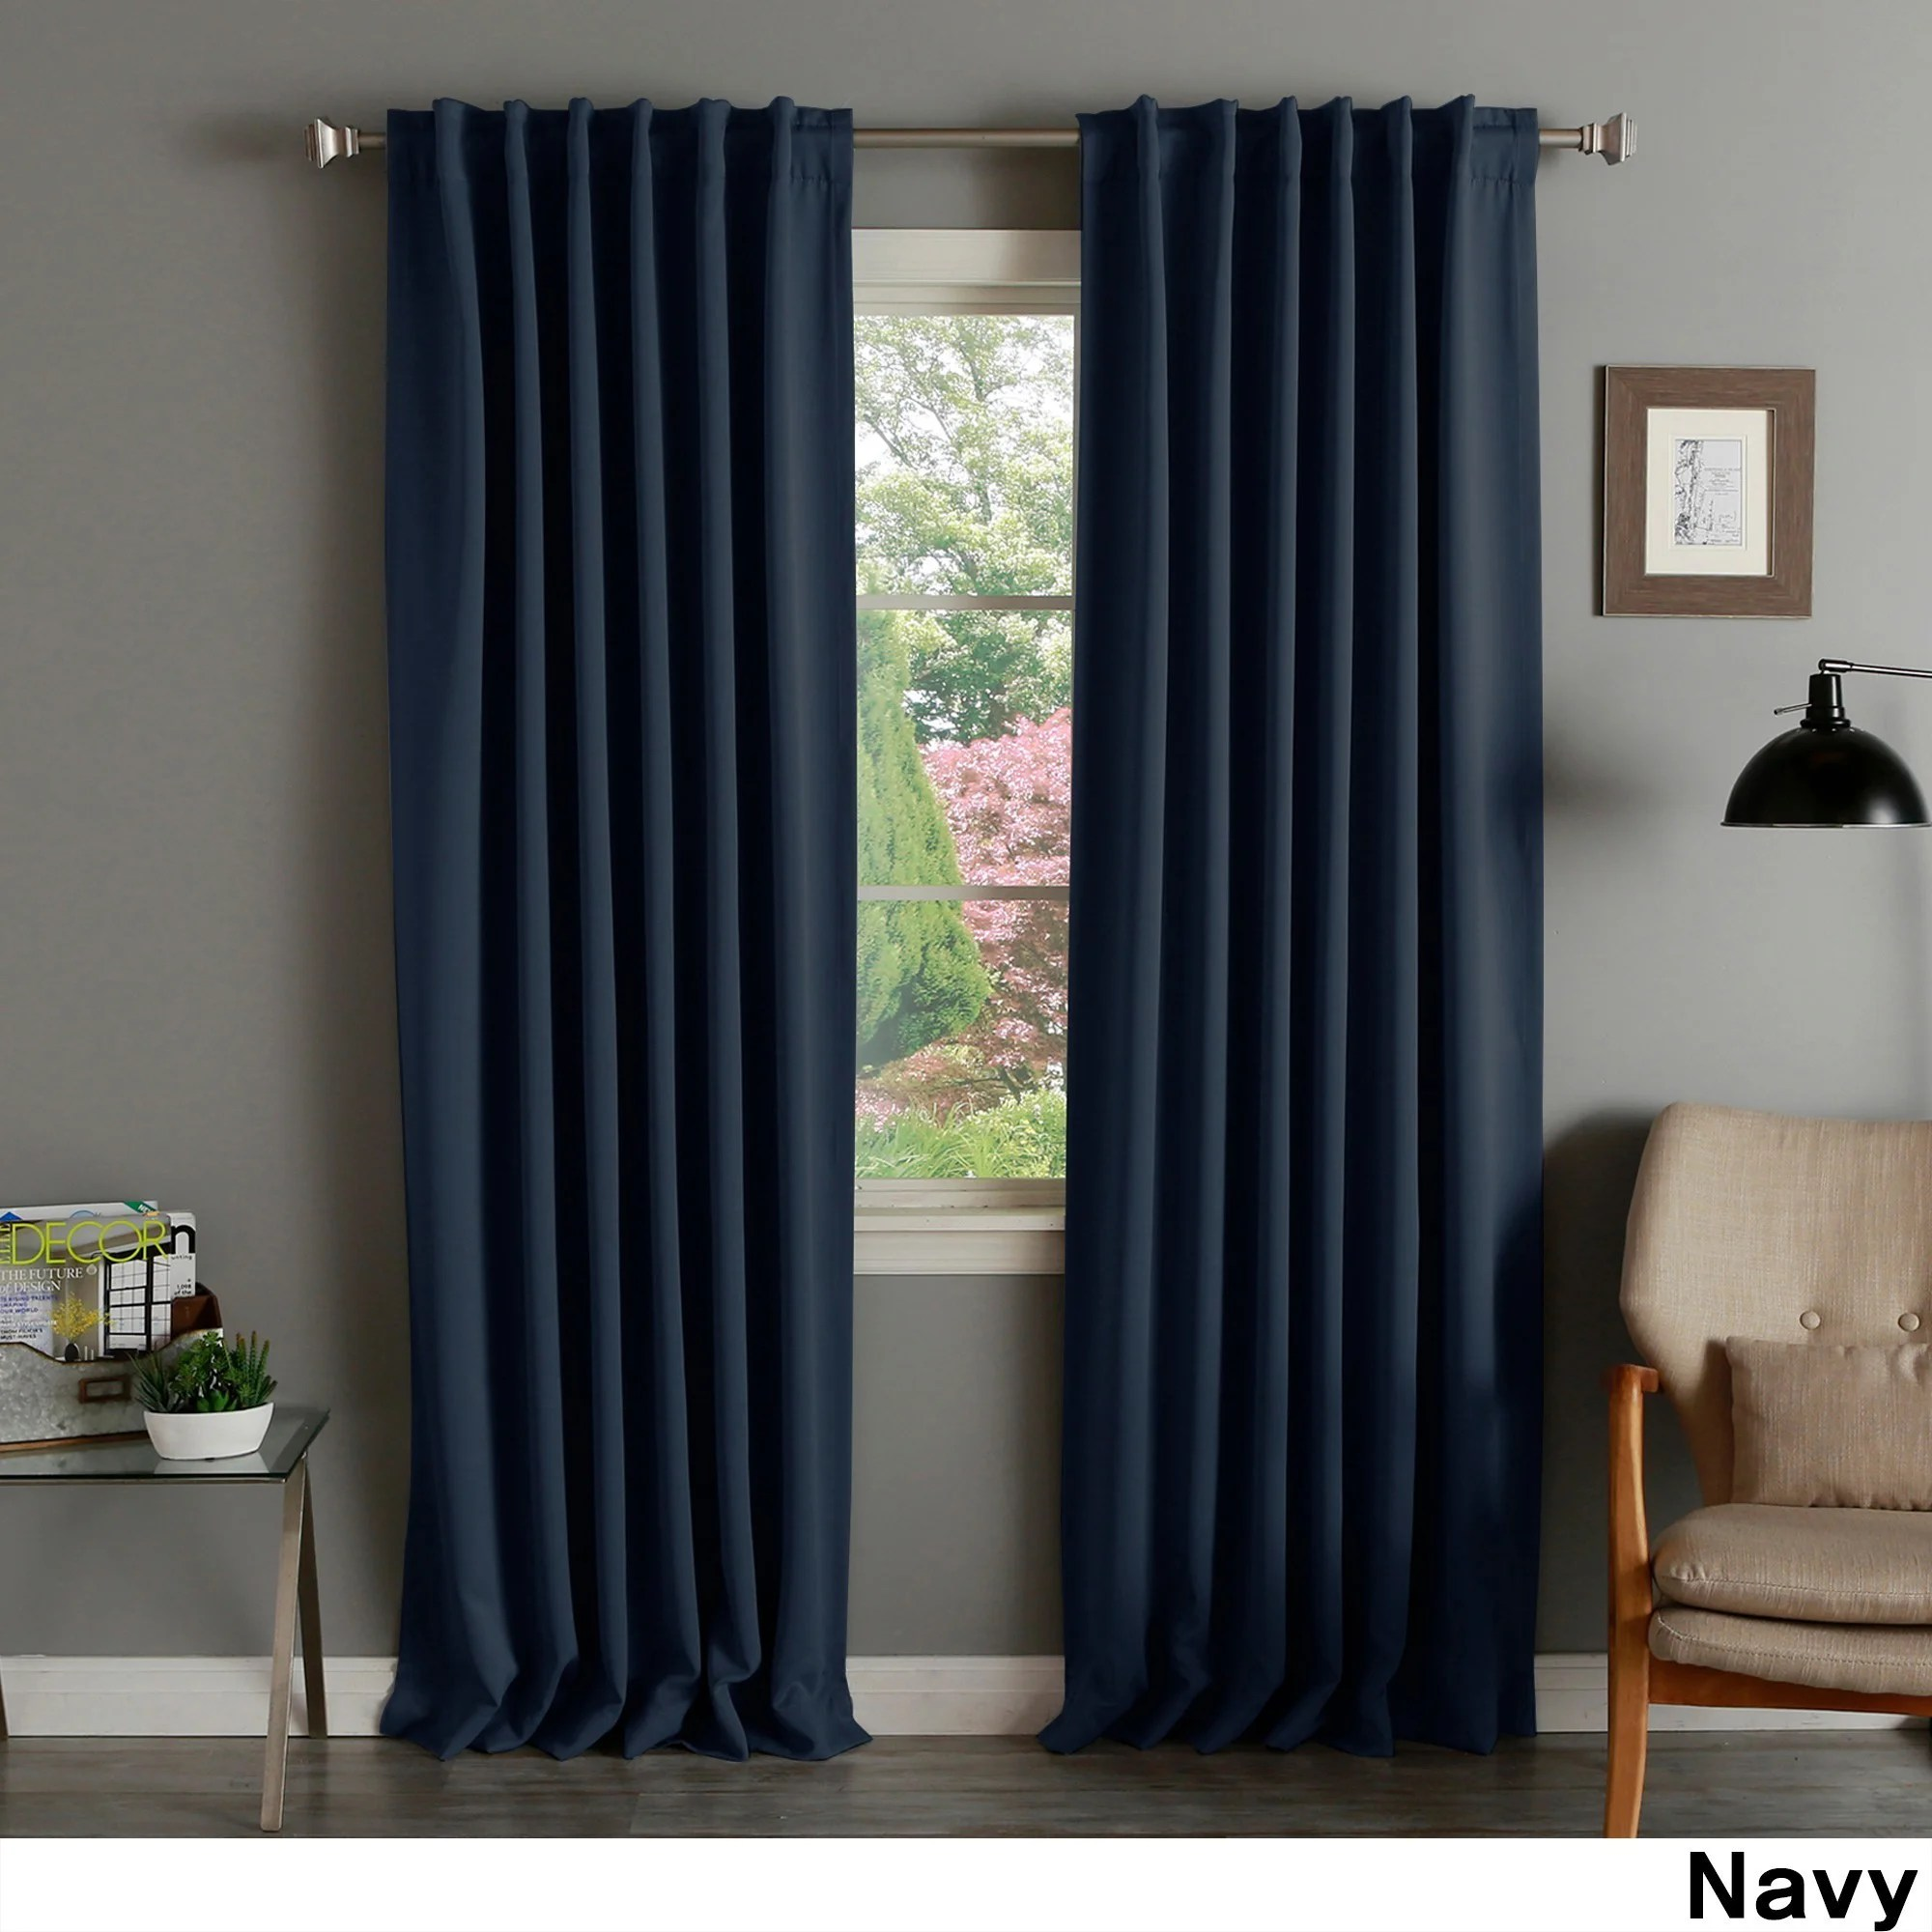 108 Inch Curtain Panels Aurora Home Solid Thermal Insulated 108 Inch Blackout Curtain Panel Pair 52 X 108